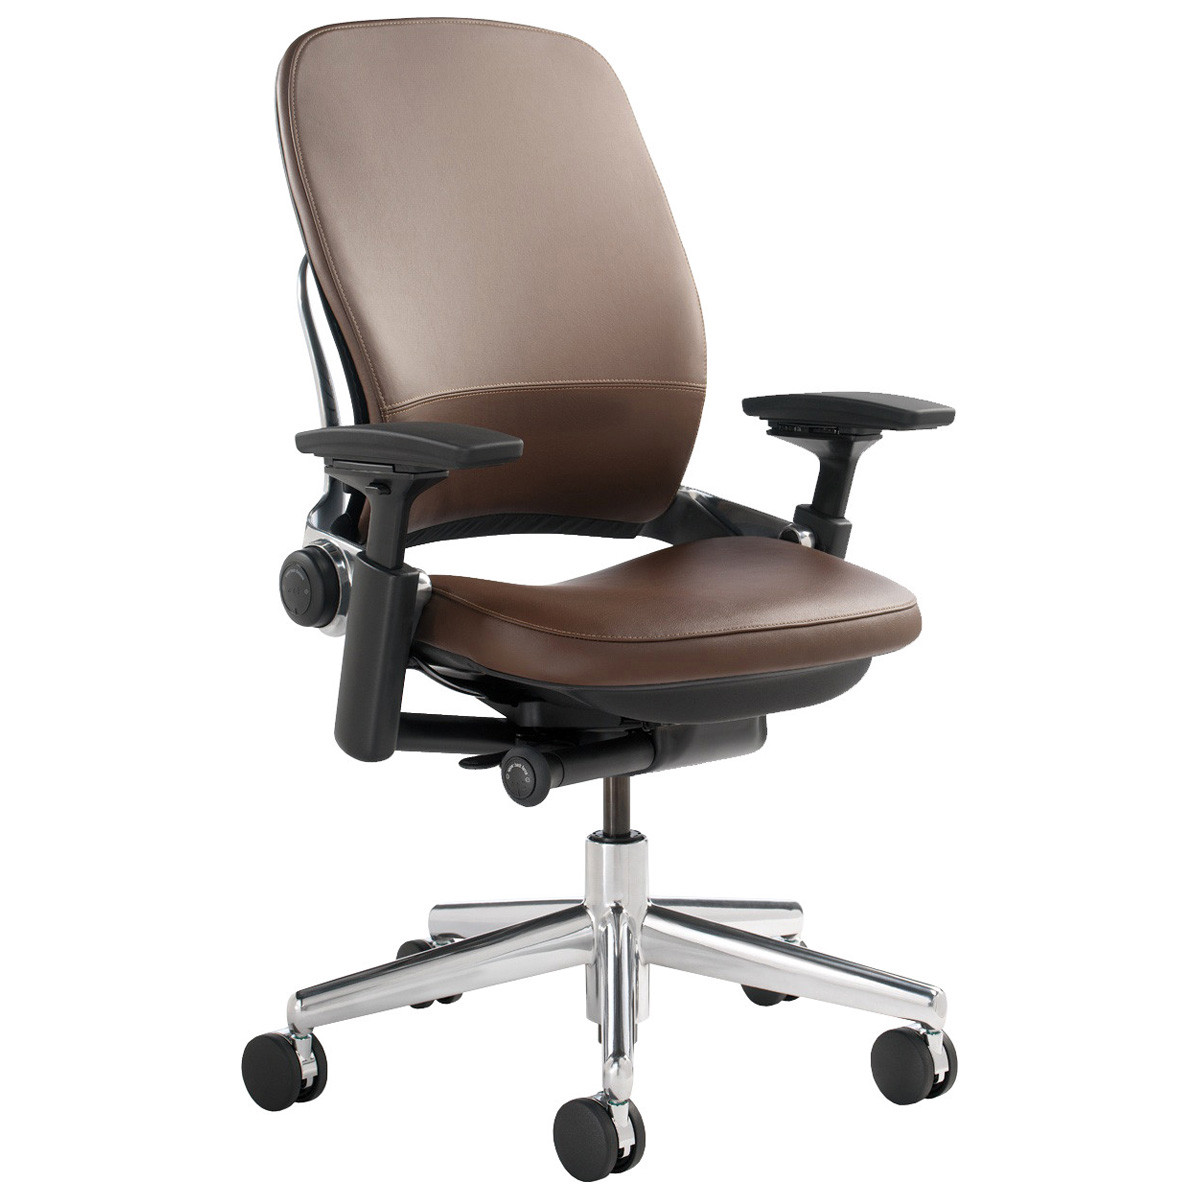 Leap Chair By Steelcase steelcase chairs | shop ergonomic chairs today